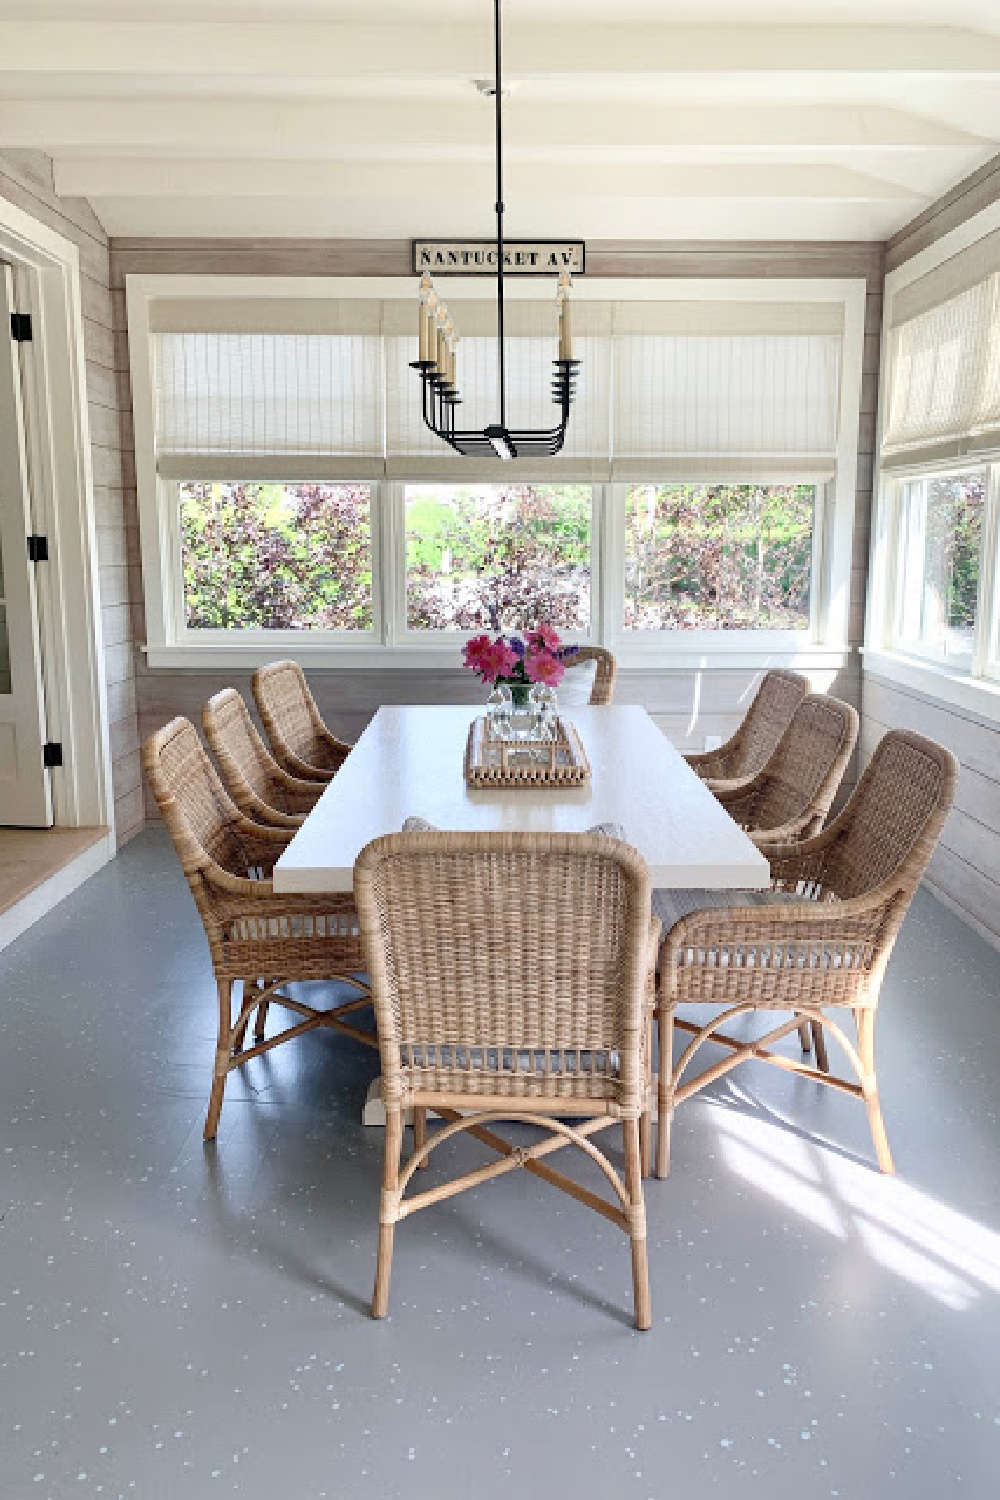 Simple and chic Nantucket casual dining in a former porch - Sherry Hart.